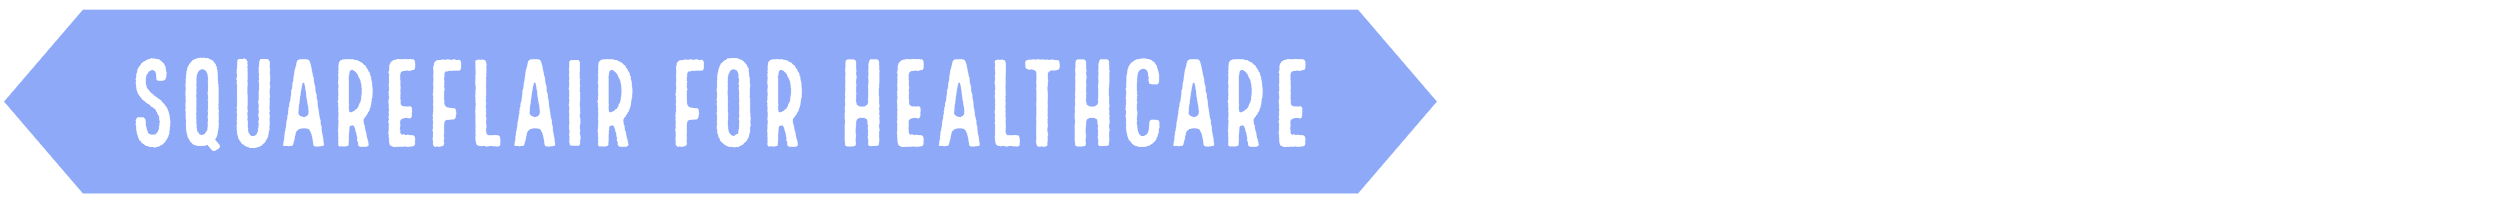 Squareflair for Healthcare